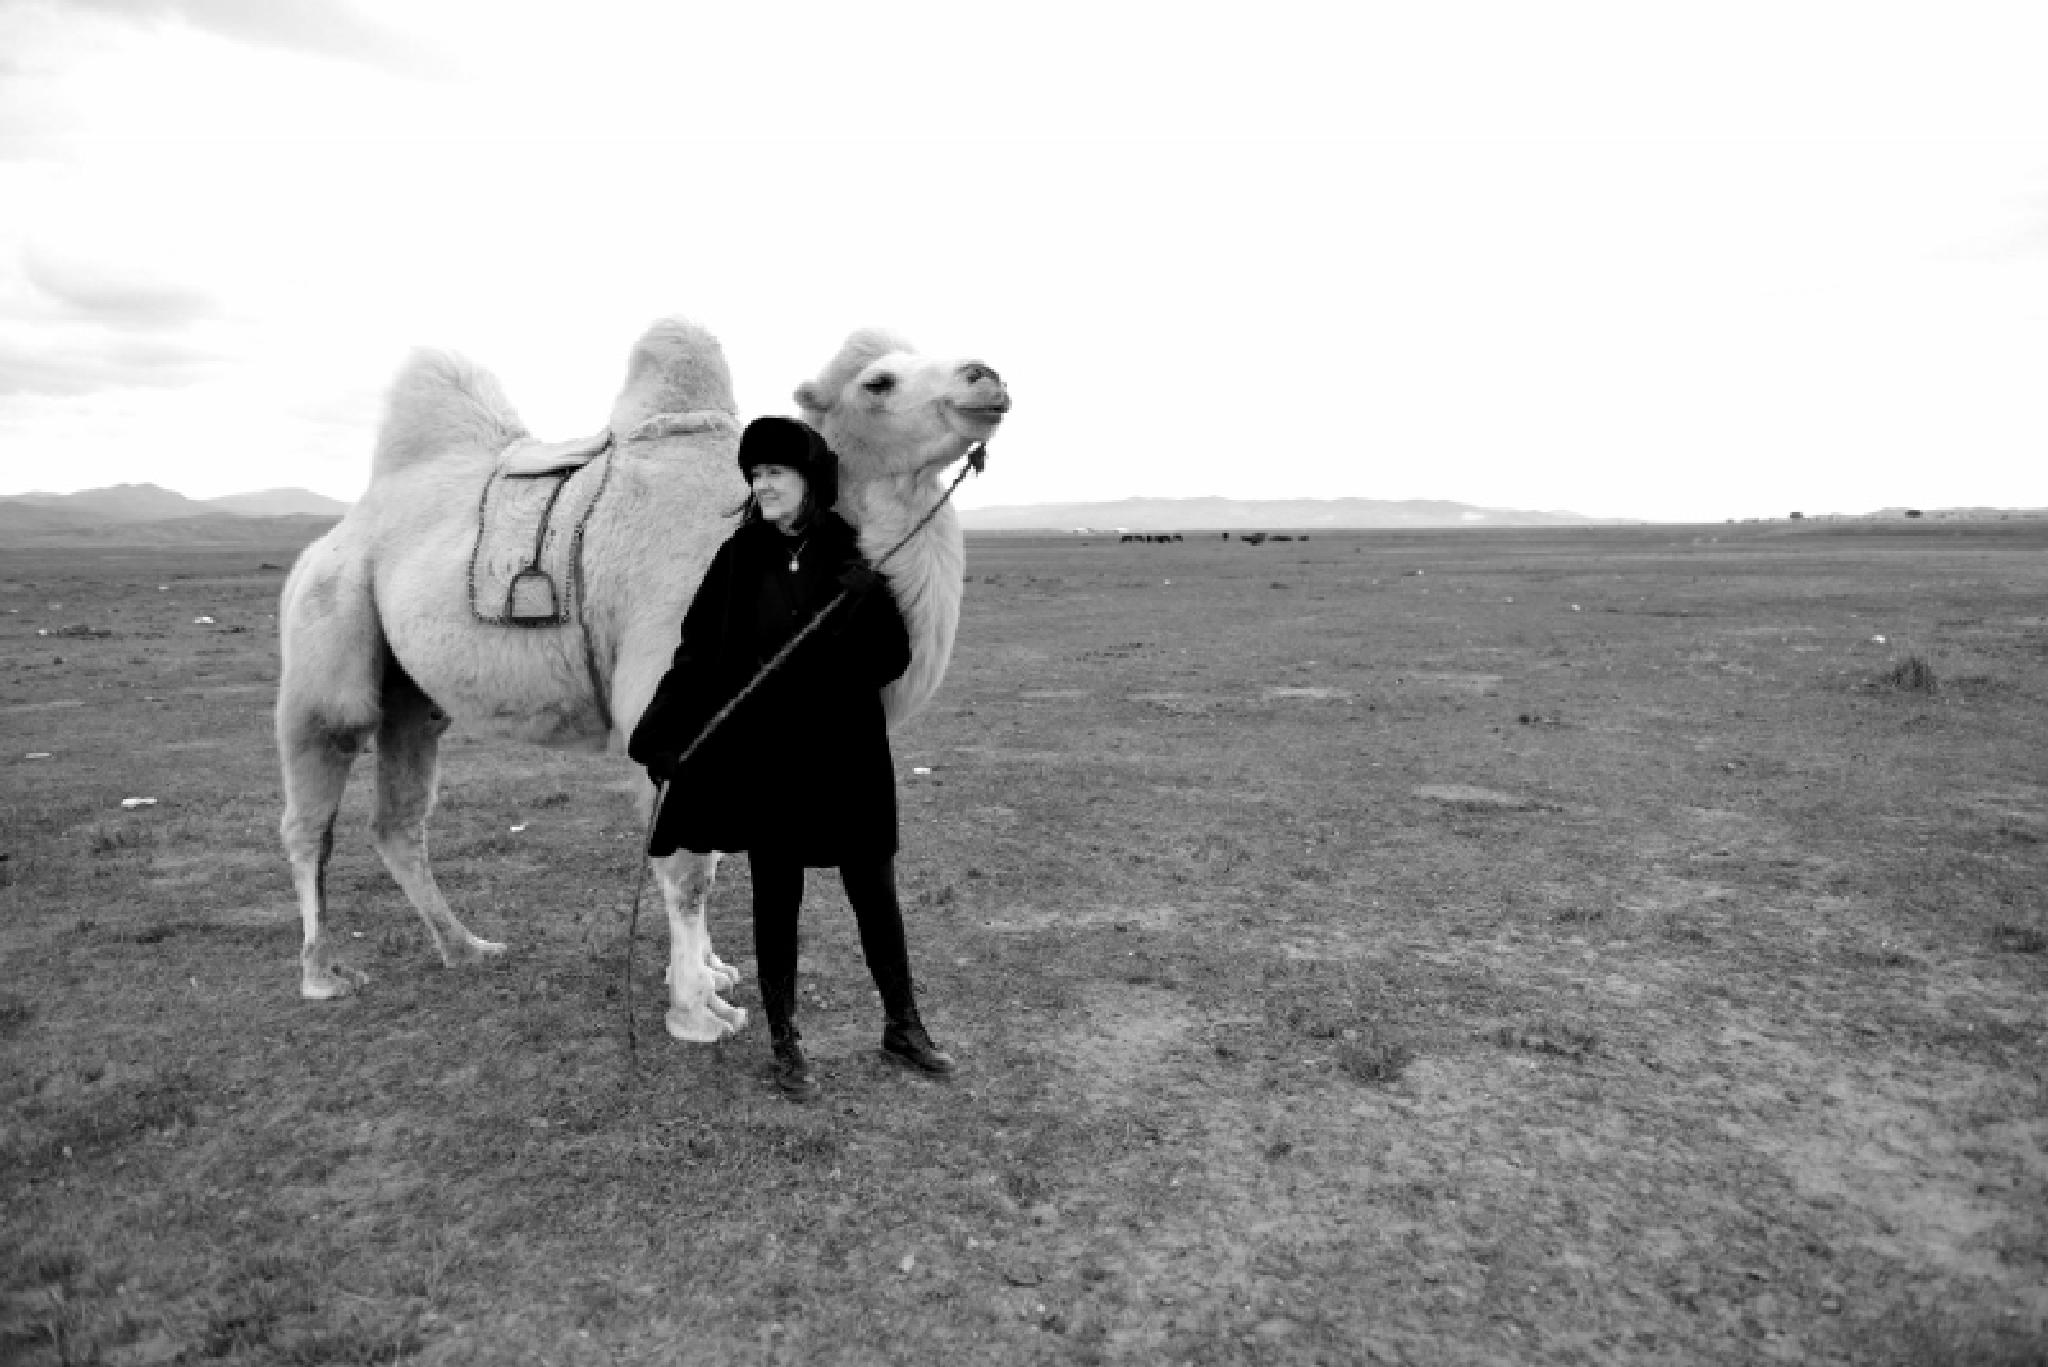 Channeling the Mongol Queens by Connie M Van Cleve